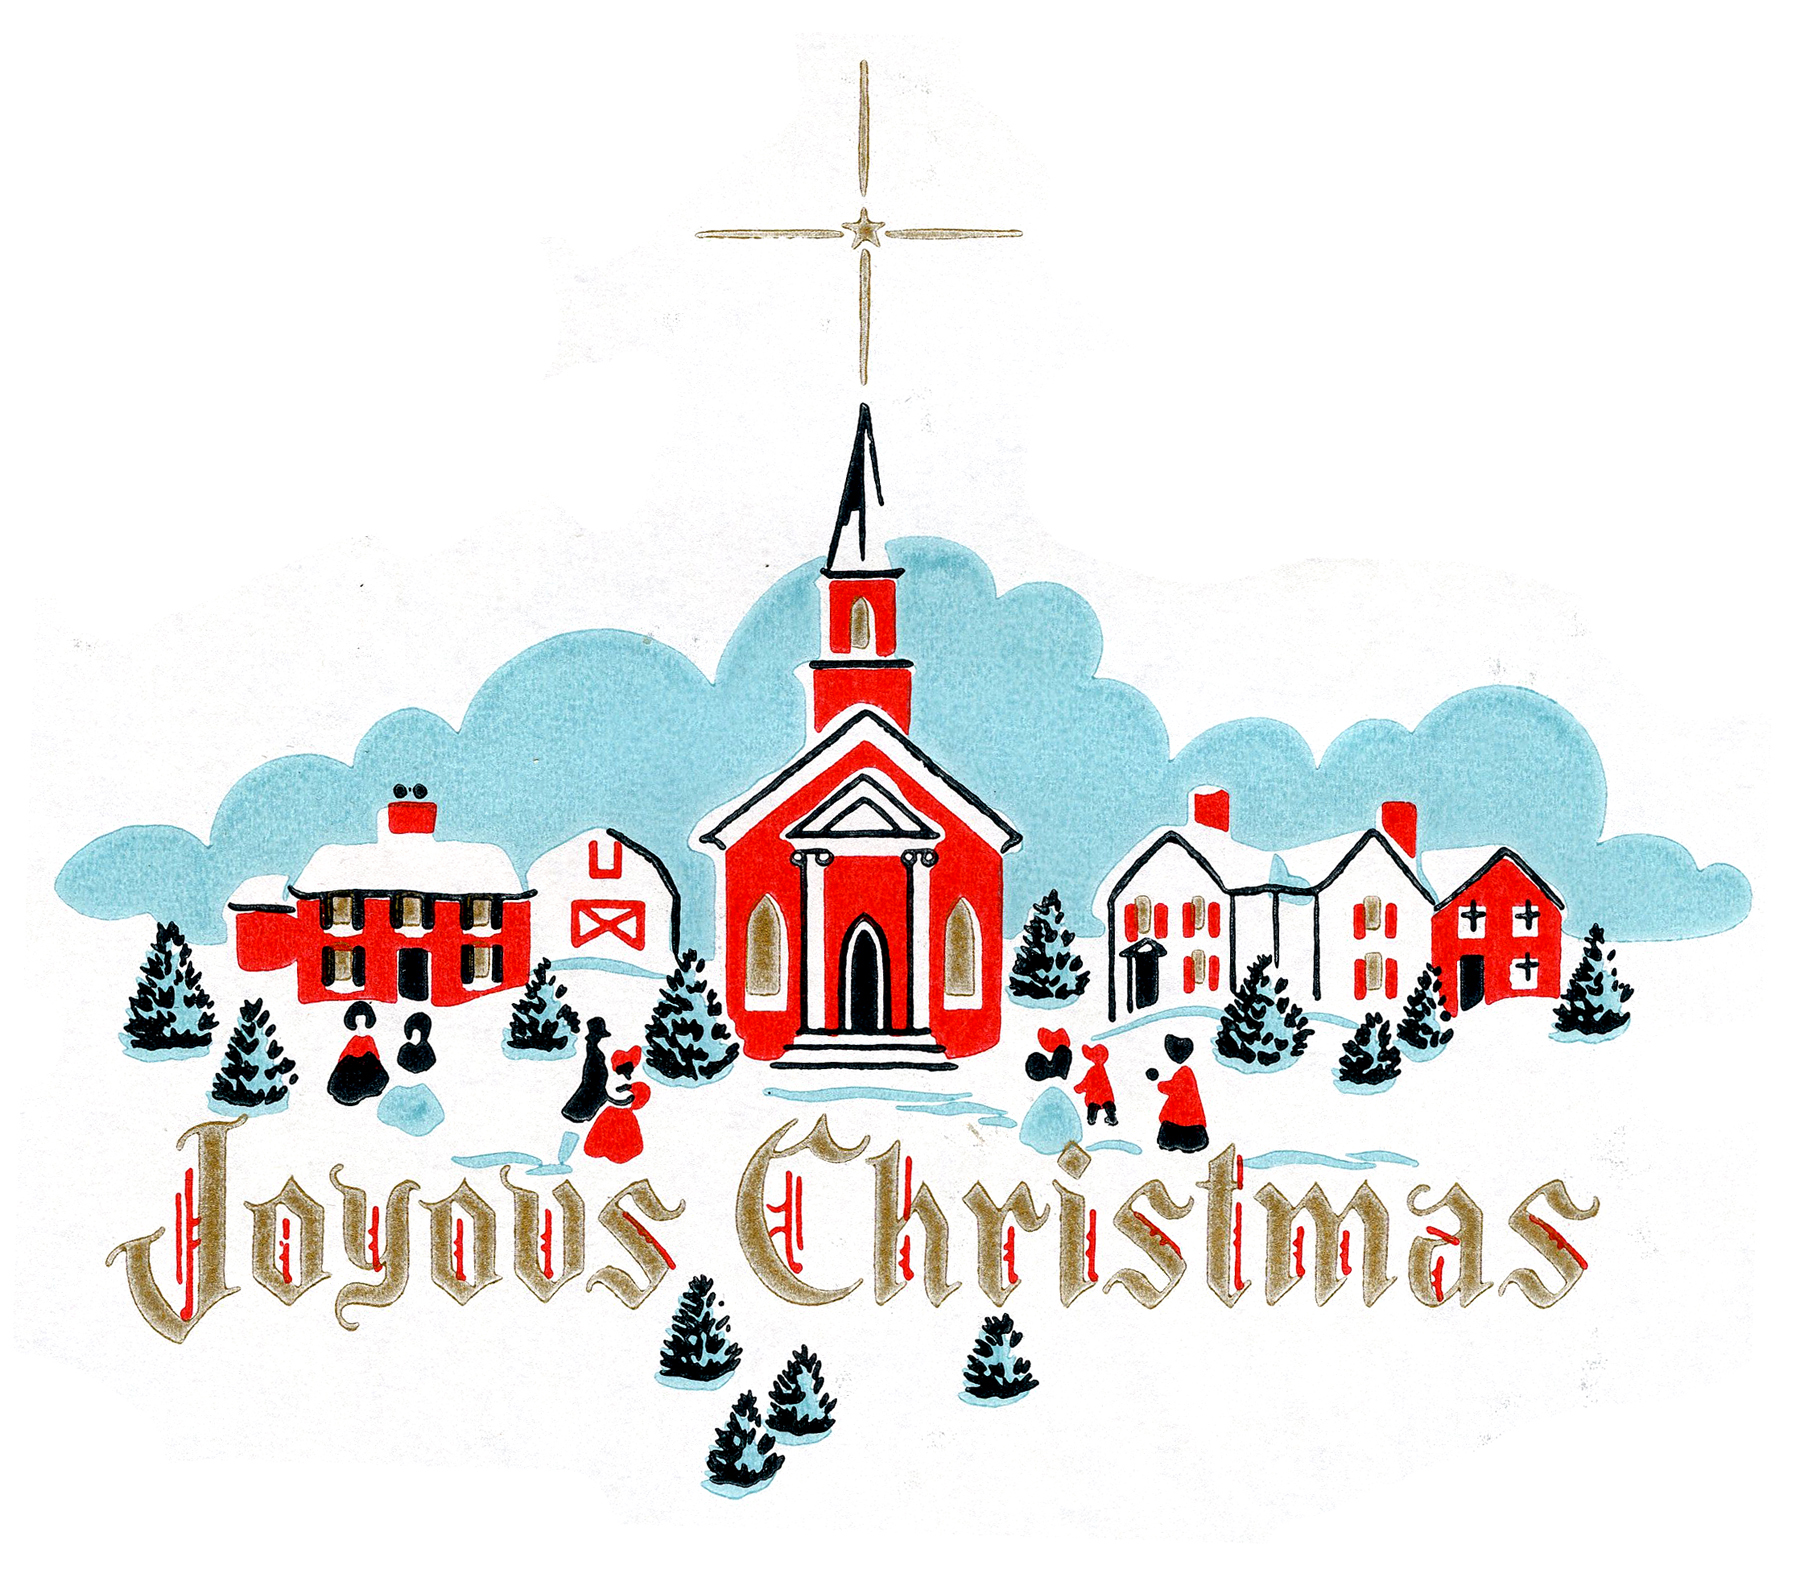 Christmas church announcements clipart clipart black and white stock Free Christmas Church Cliparts, Download Free Clip Art, Free Clip ... clipart black and white stock